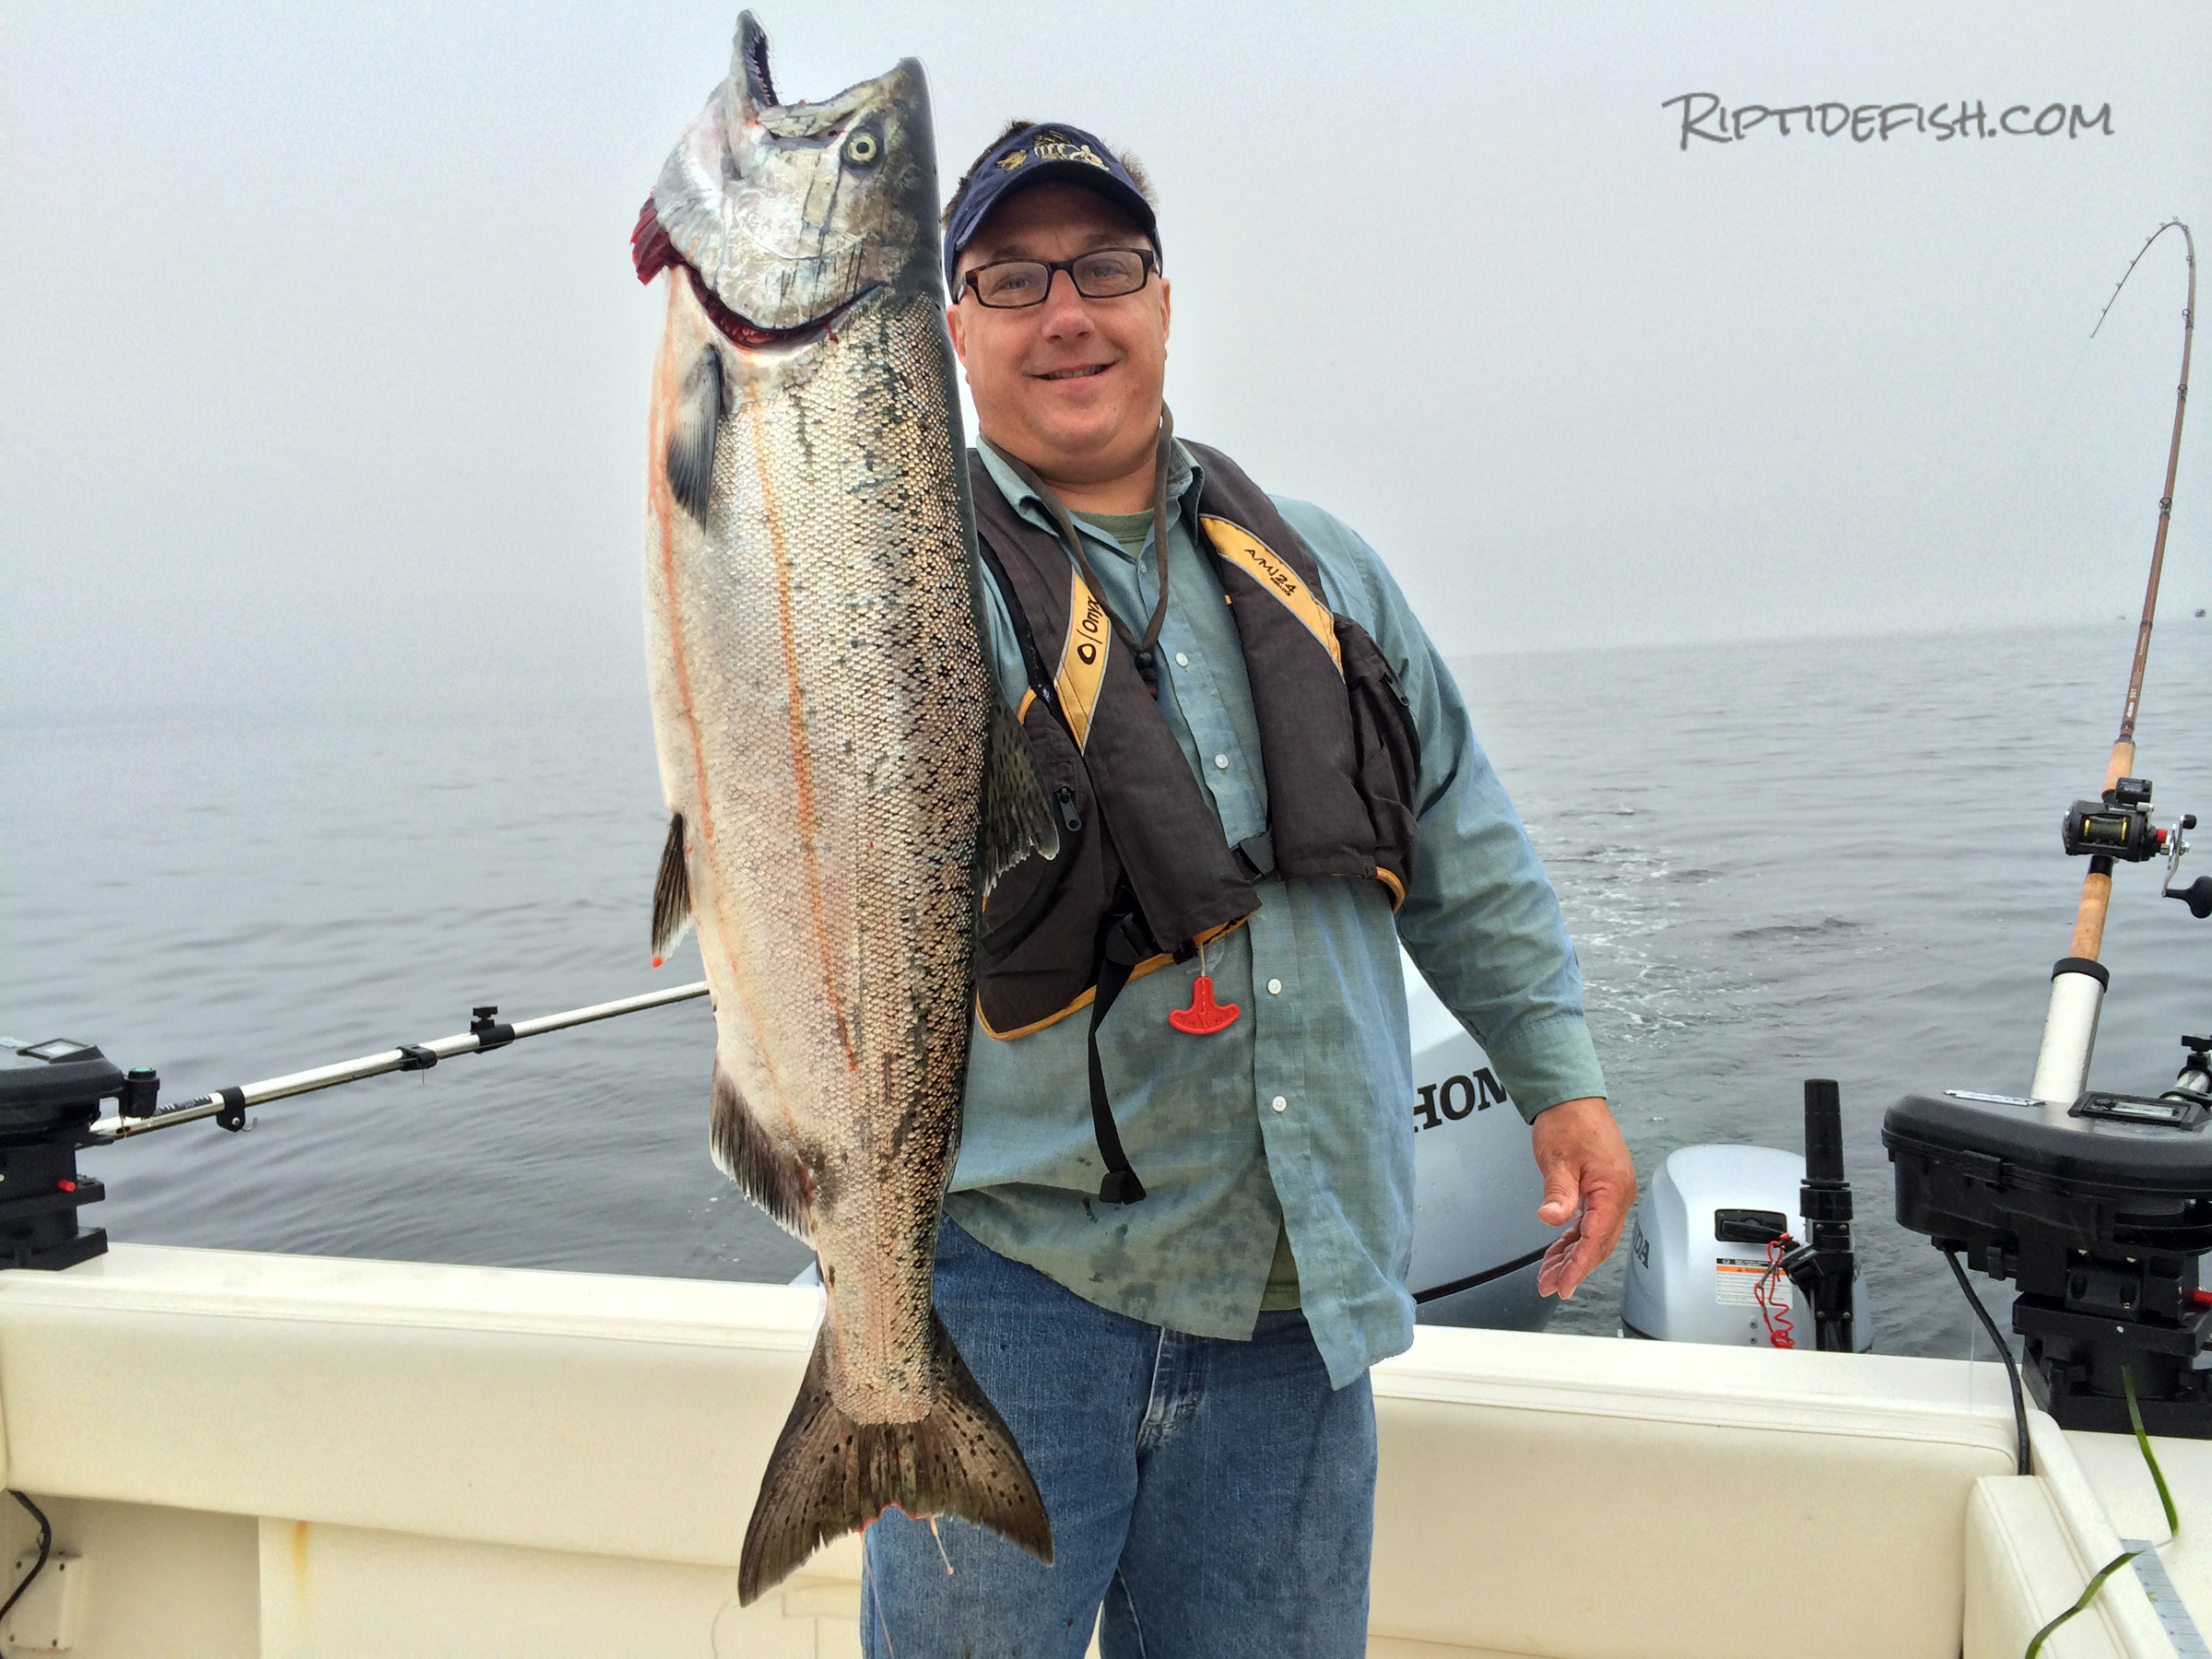 Fishing gear for catching Puget Sound Chinook Salmon